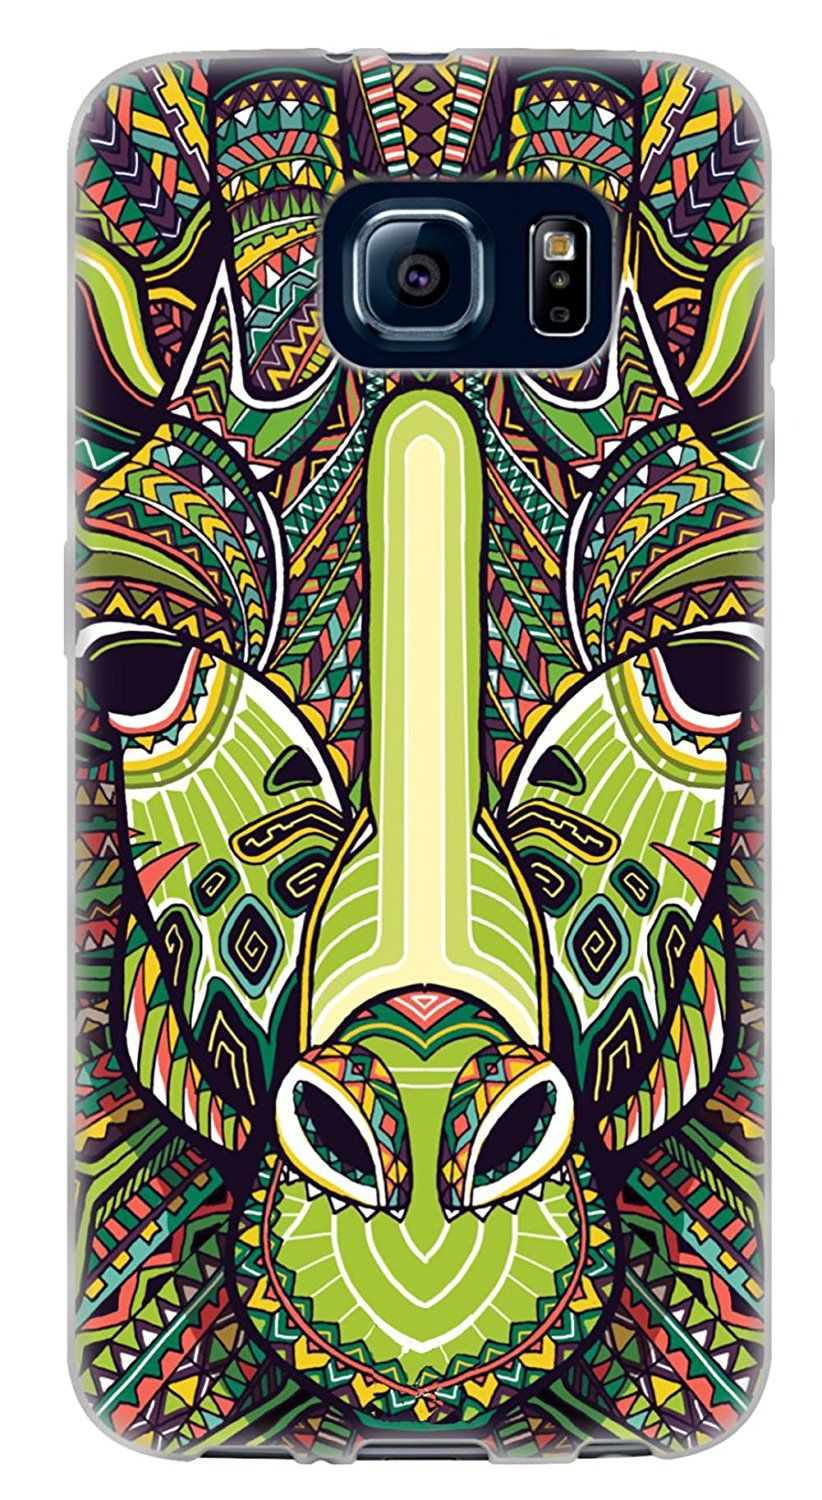 Amazon.com: {Aztec Animal Face Giraffe} Soft and Smooth Silicone Cute 3D Fitted Bumper Back Cover Gel Case for Samsung Galaxy S6 {Color is Green, Teal and Pink}: Cell Phones & Accessories